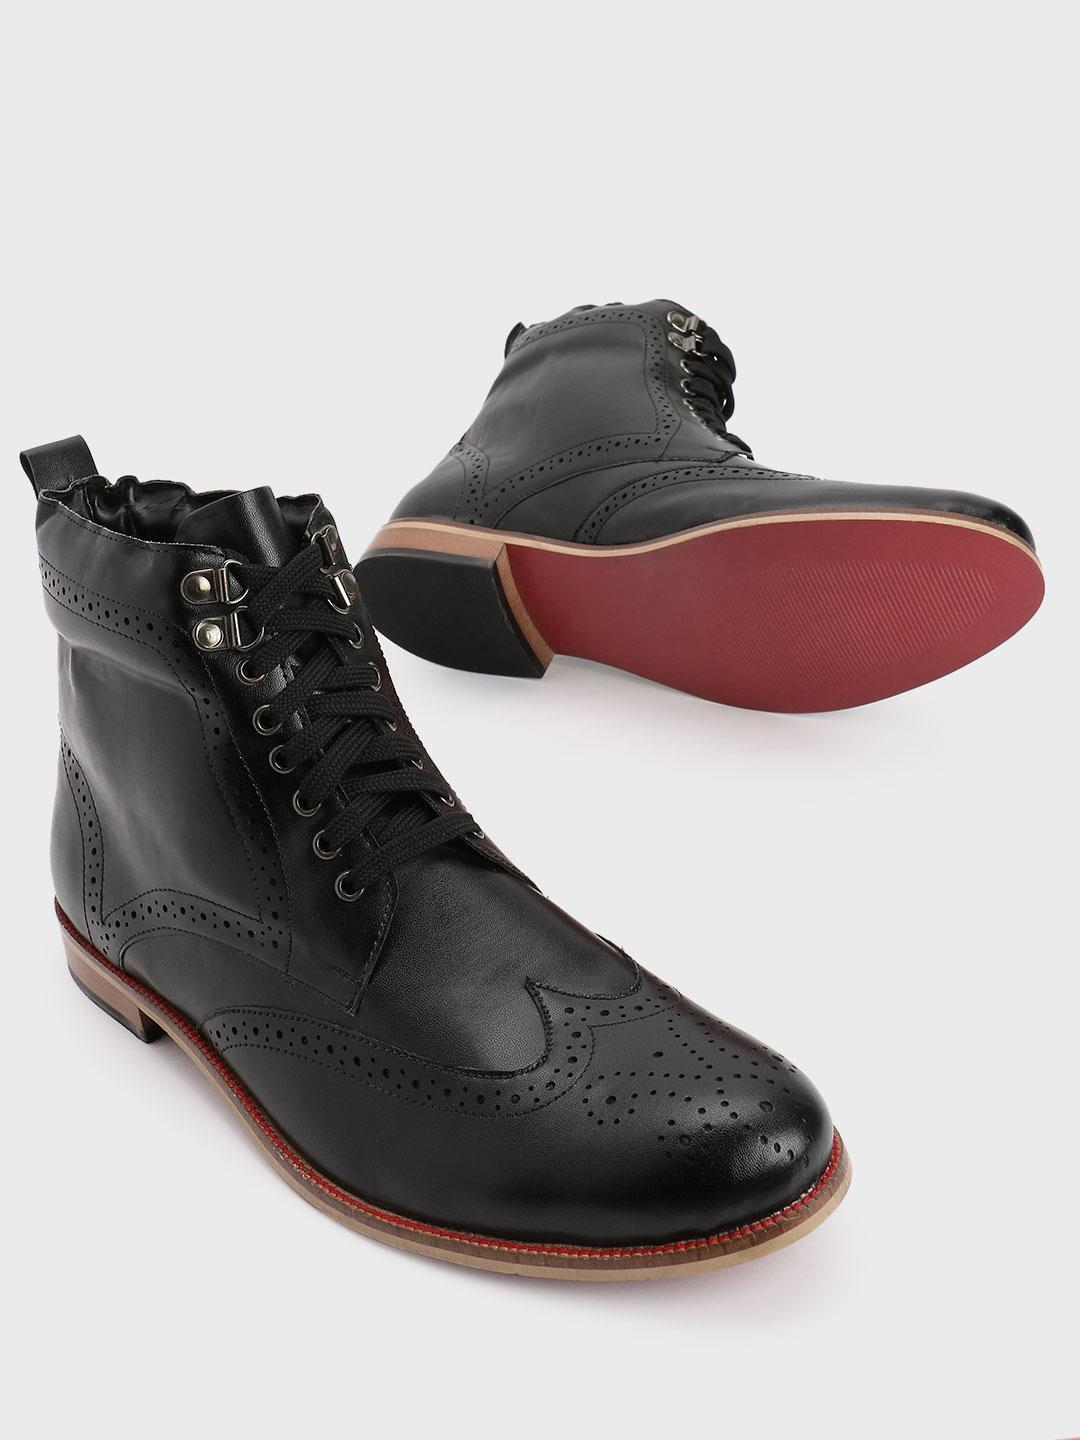 Bolt Of The Good Stuff Black Brogue Mid Top Lace-Up Boots 1